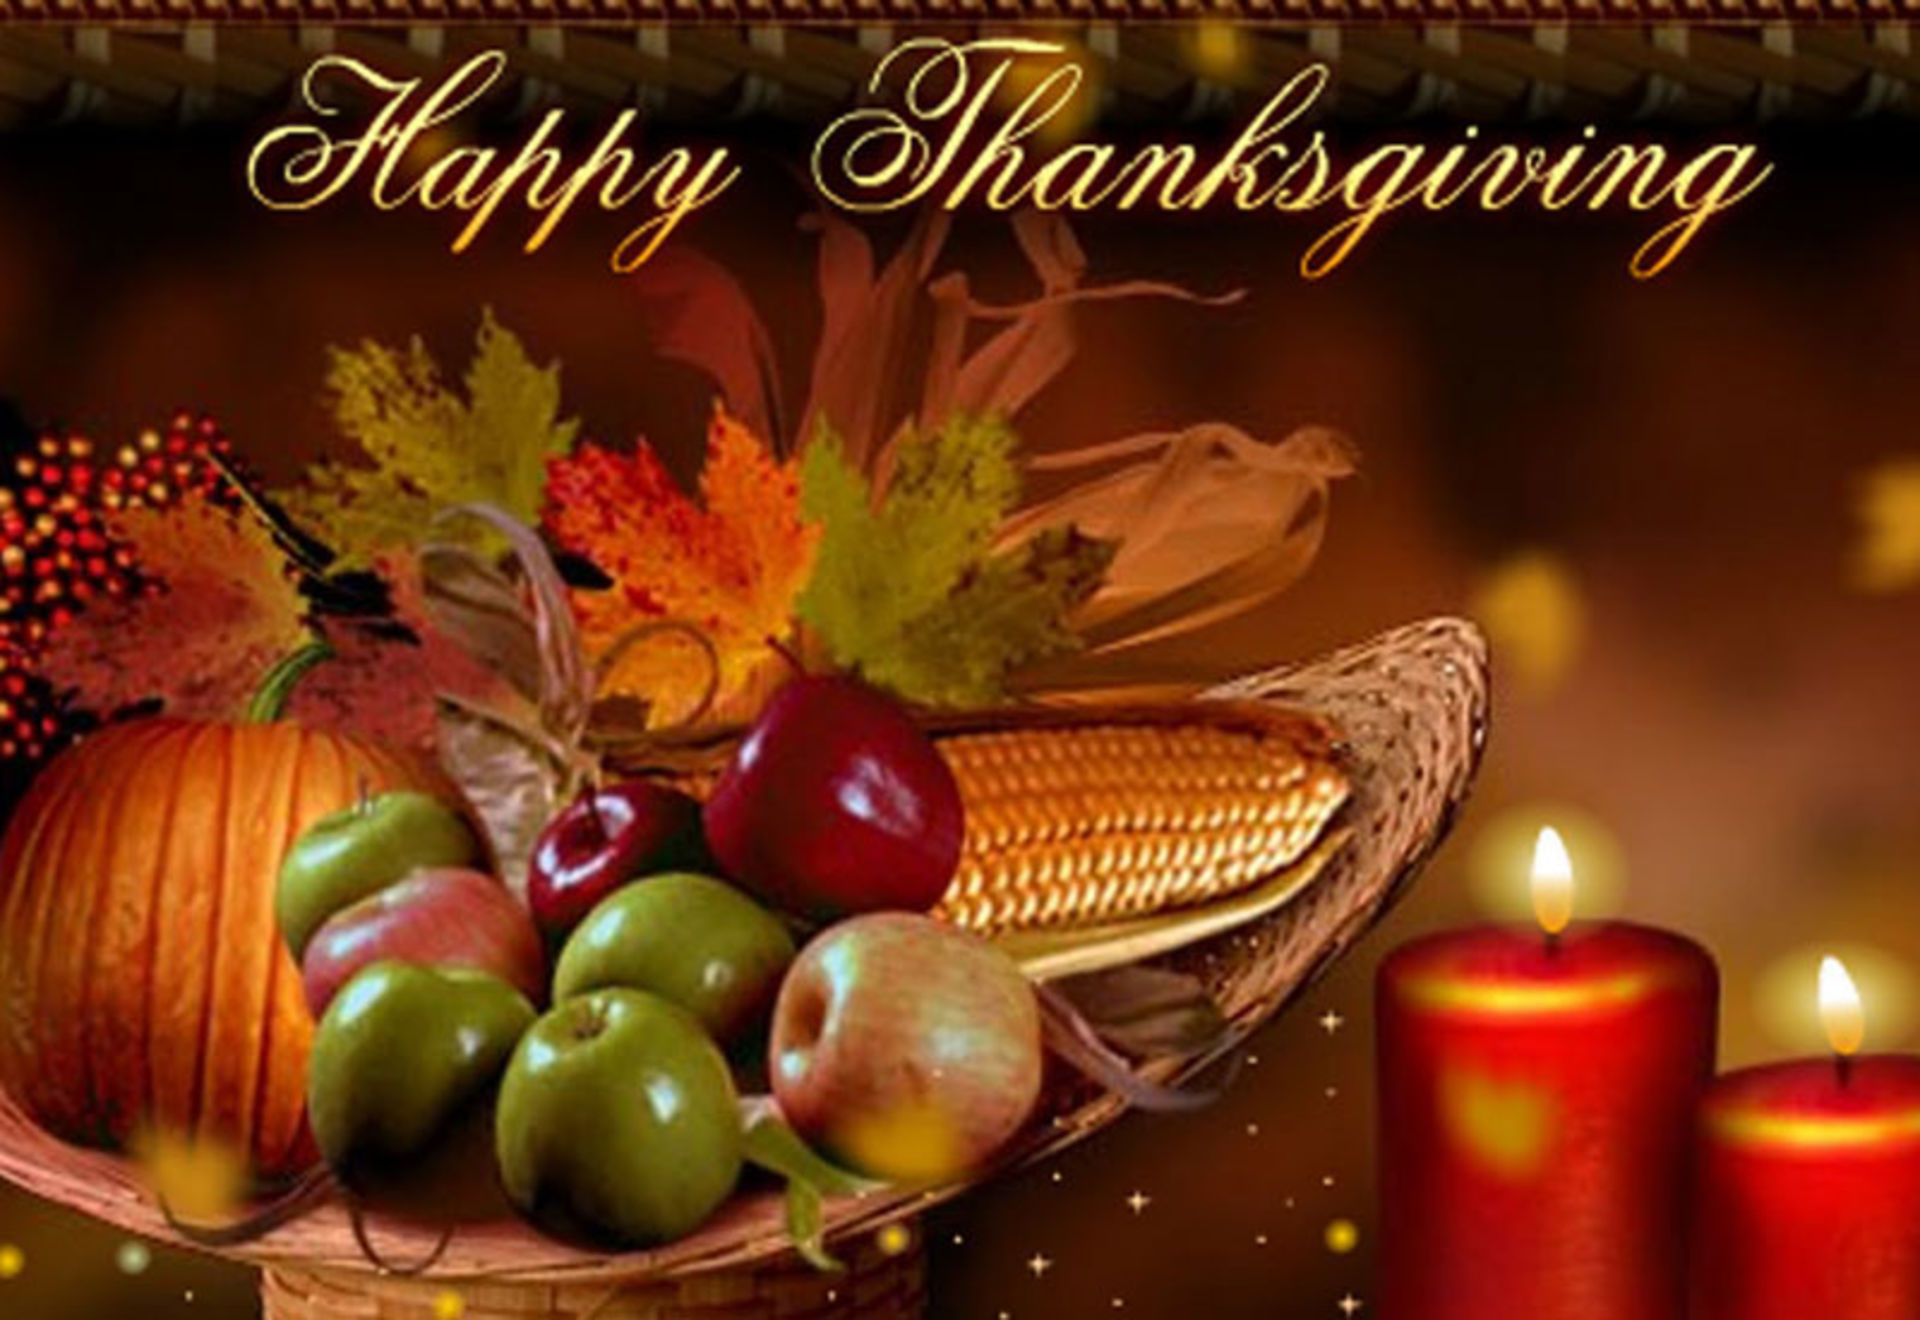 HAPPY THANKSGIVING FROM TONY SWAINEY AND COMPANY